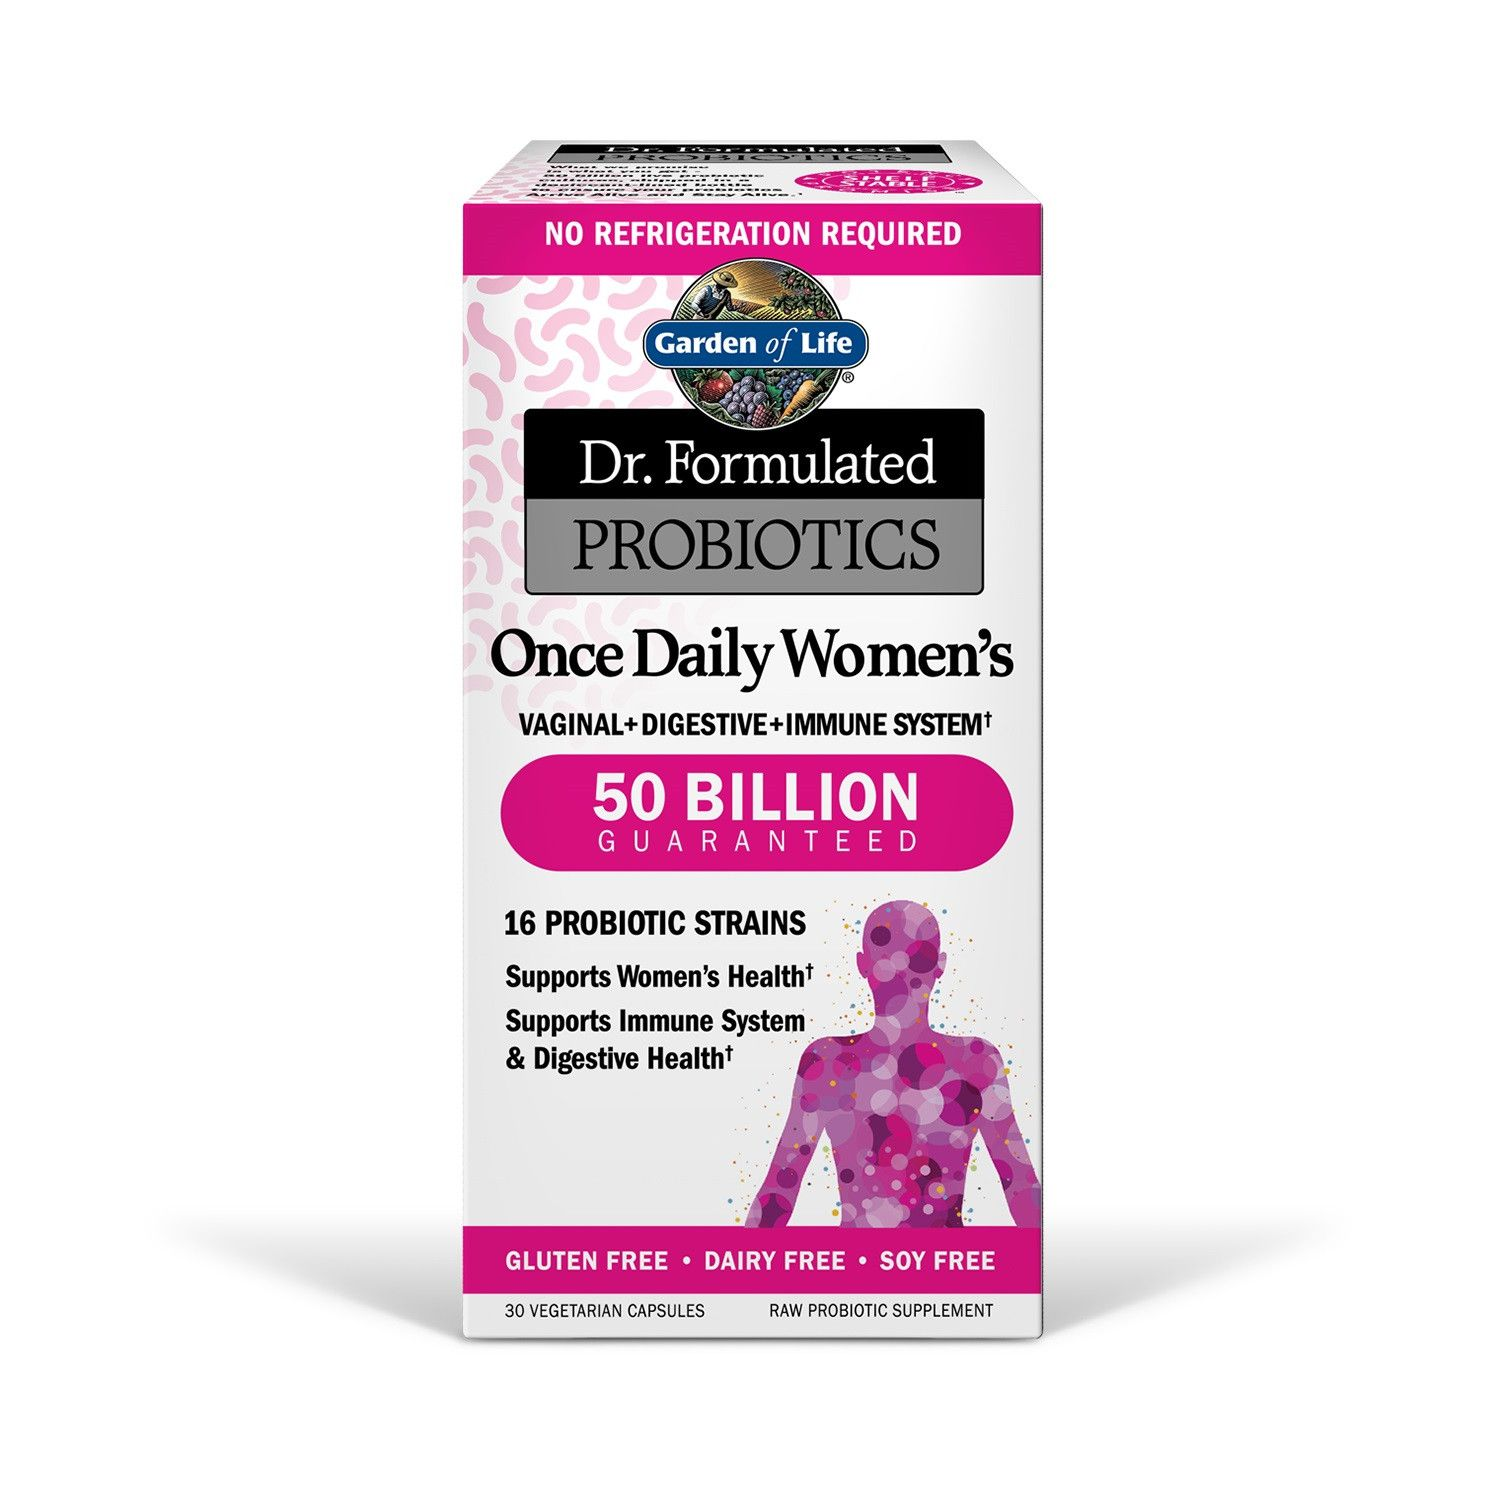 Garden Of Life Dr. Formulated Probiotics Once Daily